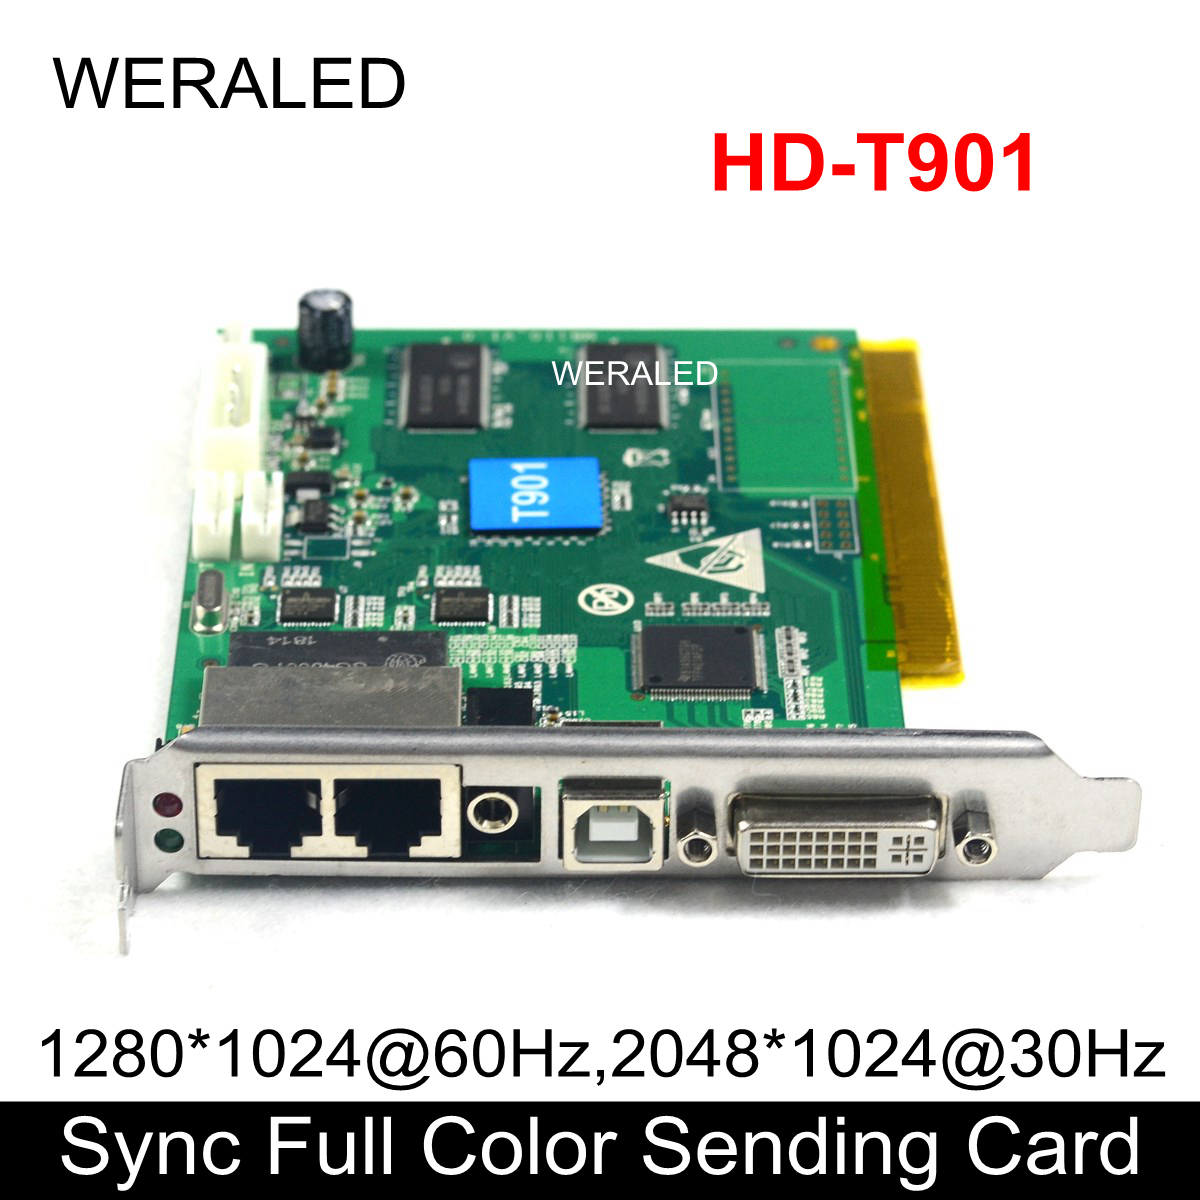 Huidu Synchronous Full Color Sending Card HD T901, RGB LED Video Controller support P2.5 P3 P4 P5 P6 P7.62 P8 P10 LED Video Wall